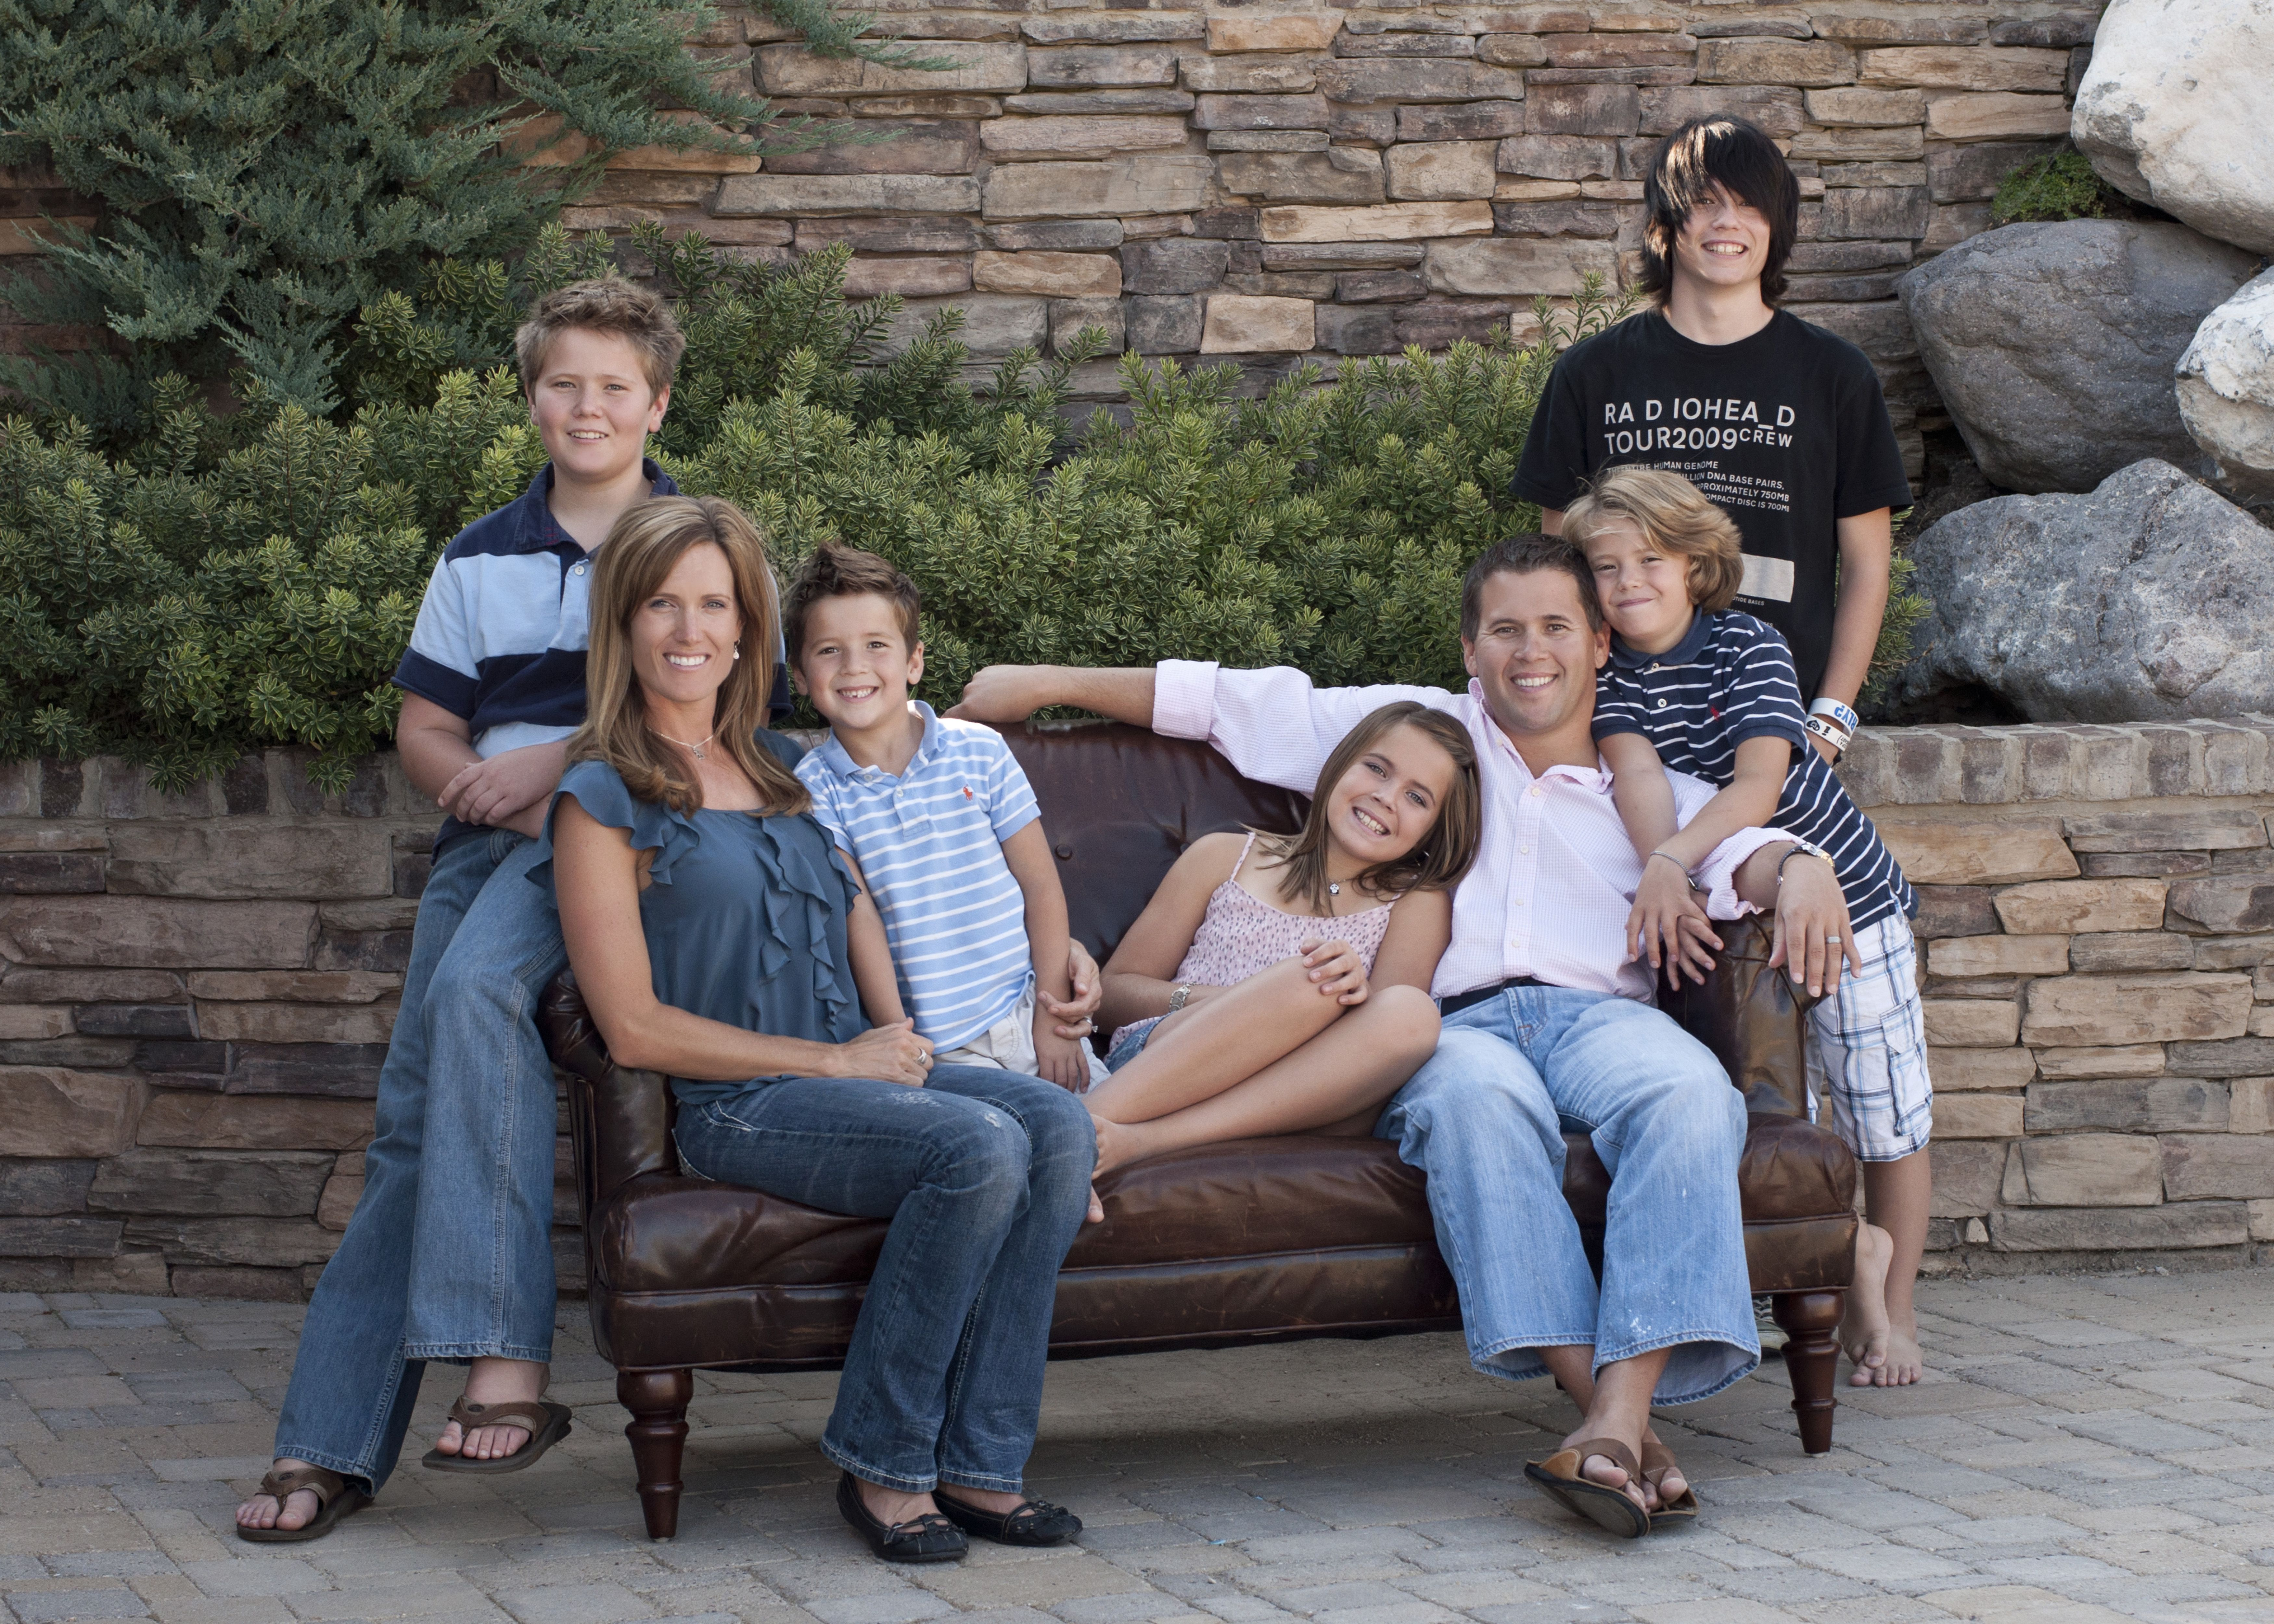 Outdoor Photography Poses Family With Teens Jumping